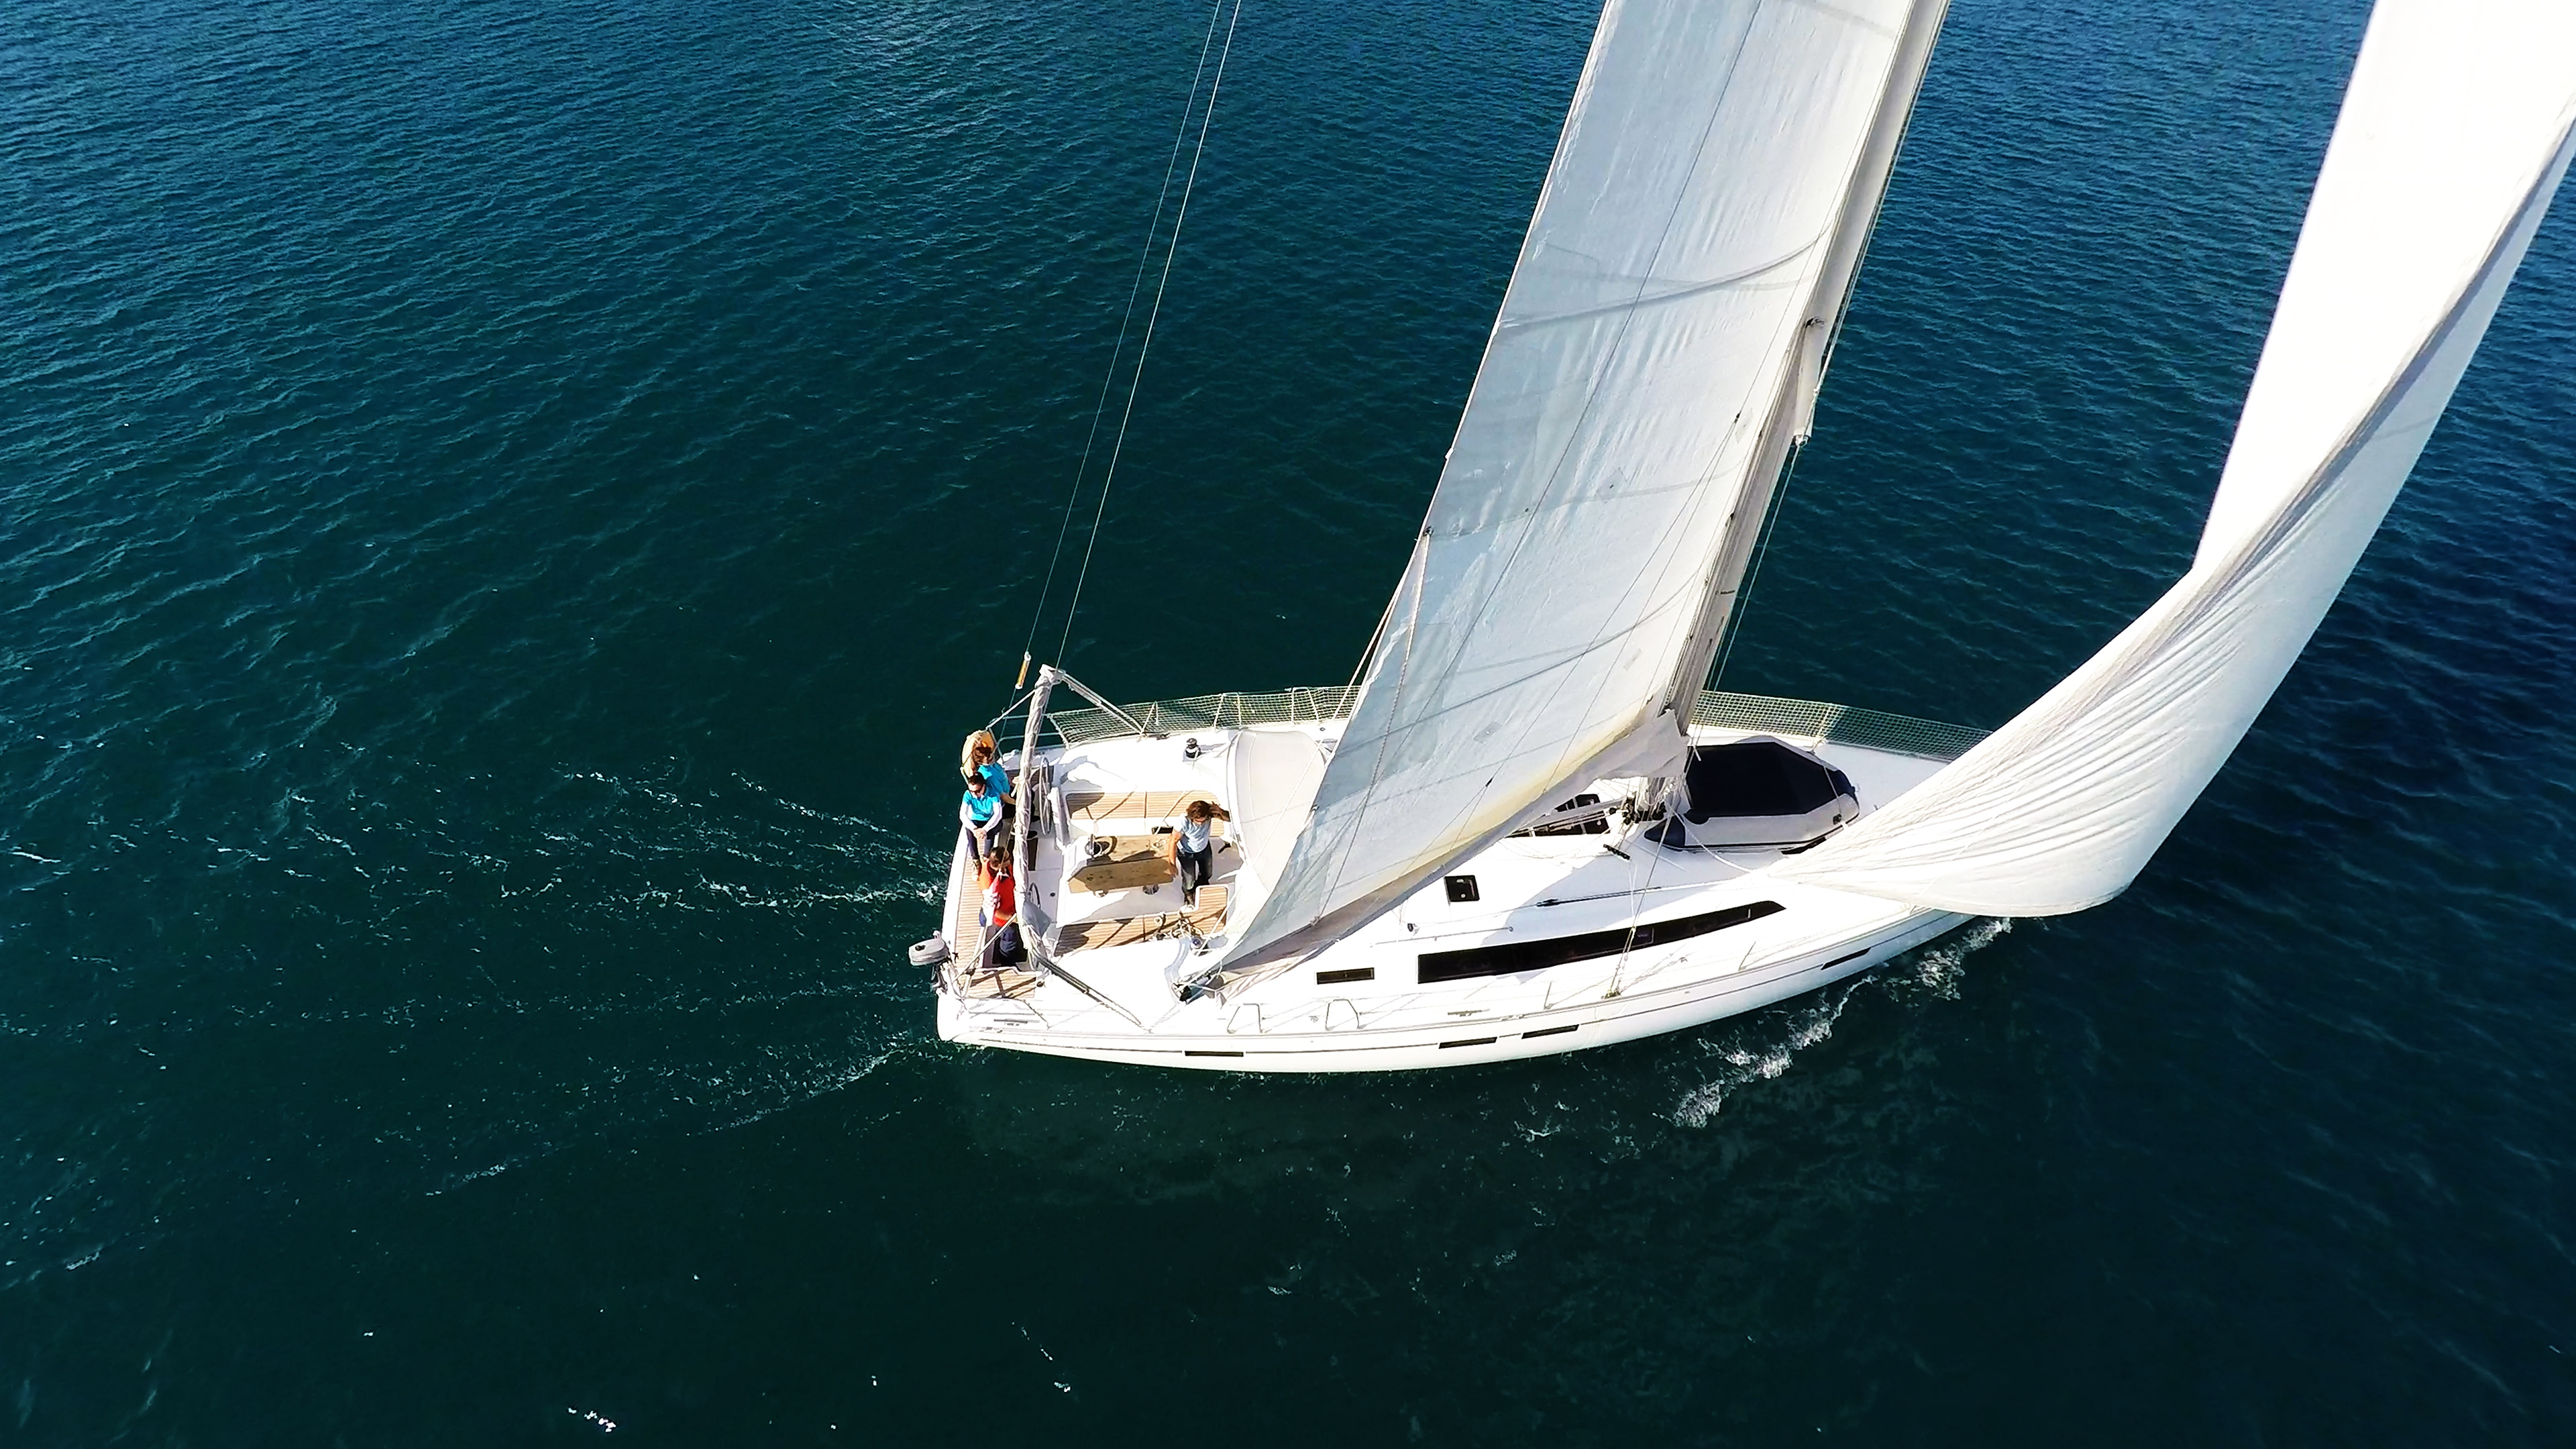 Photos of sailing yacht Bavaria 46 in charter